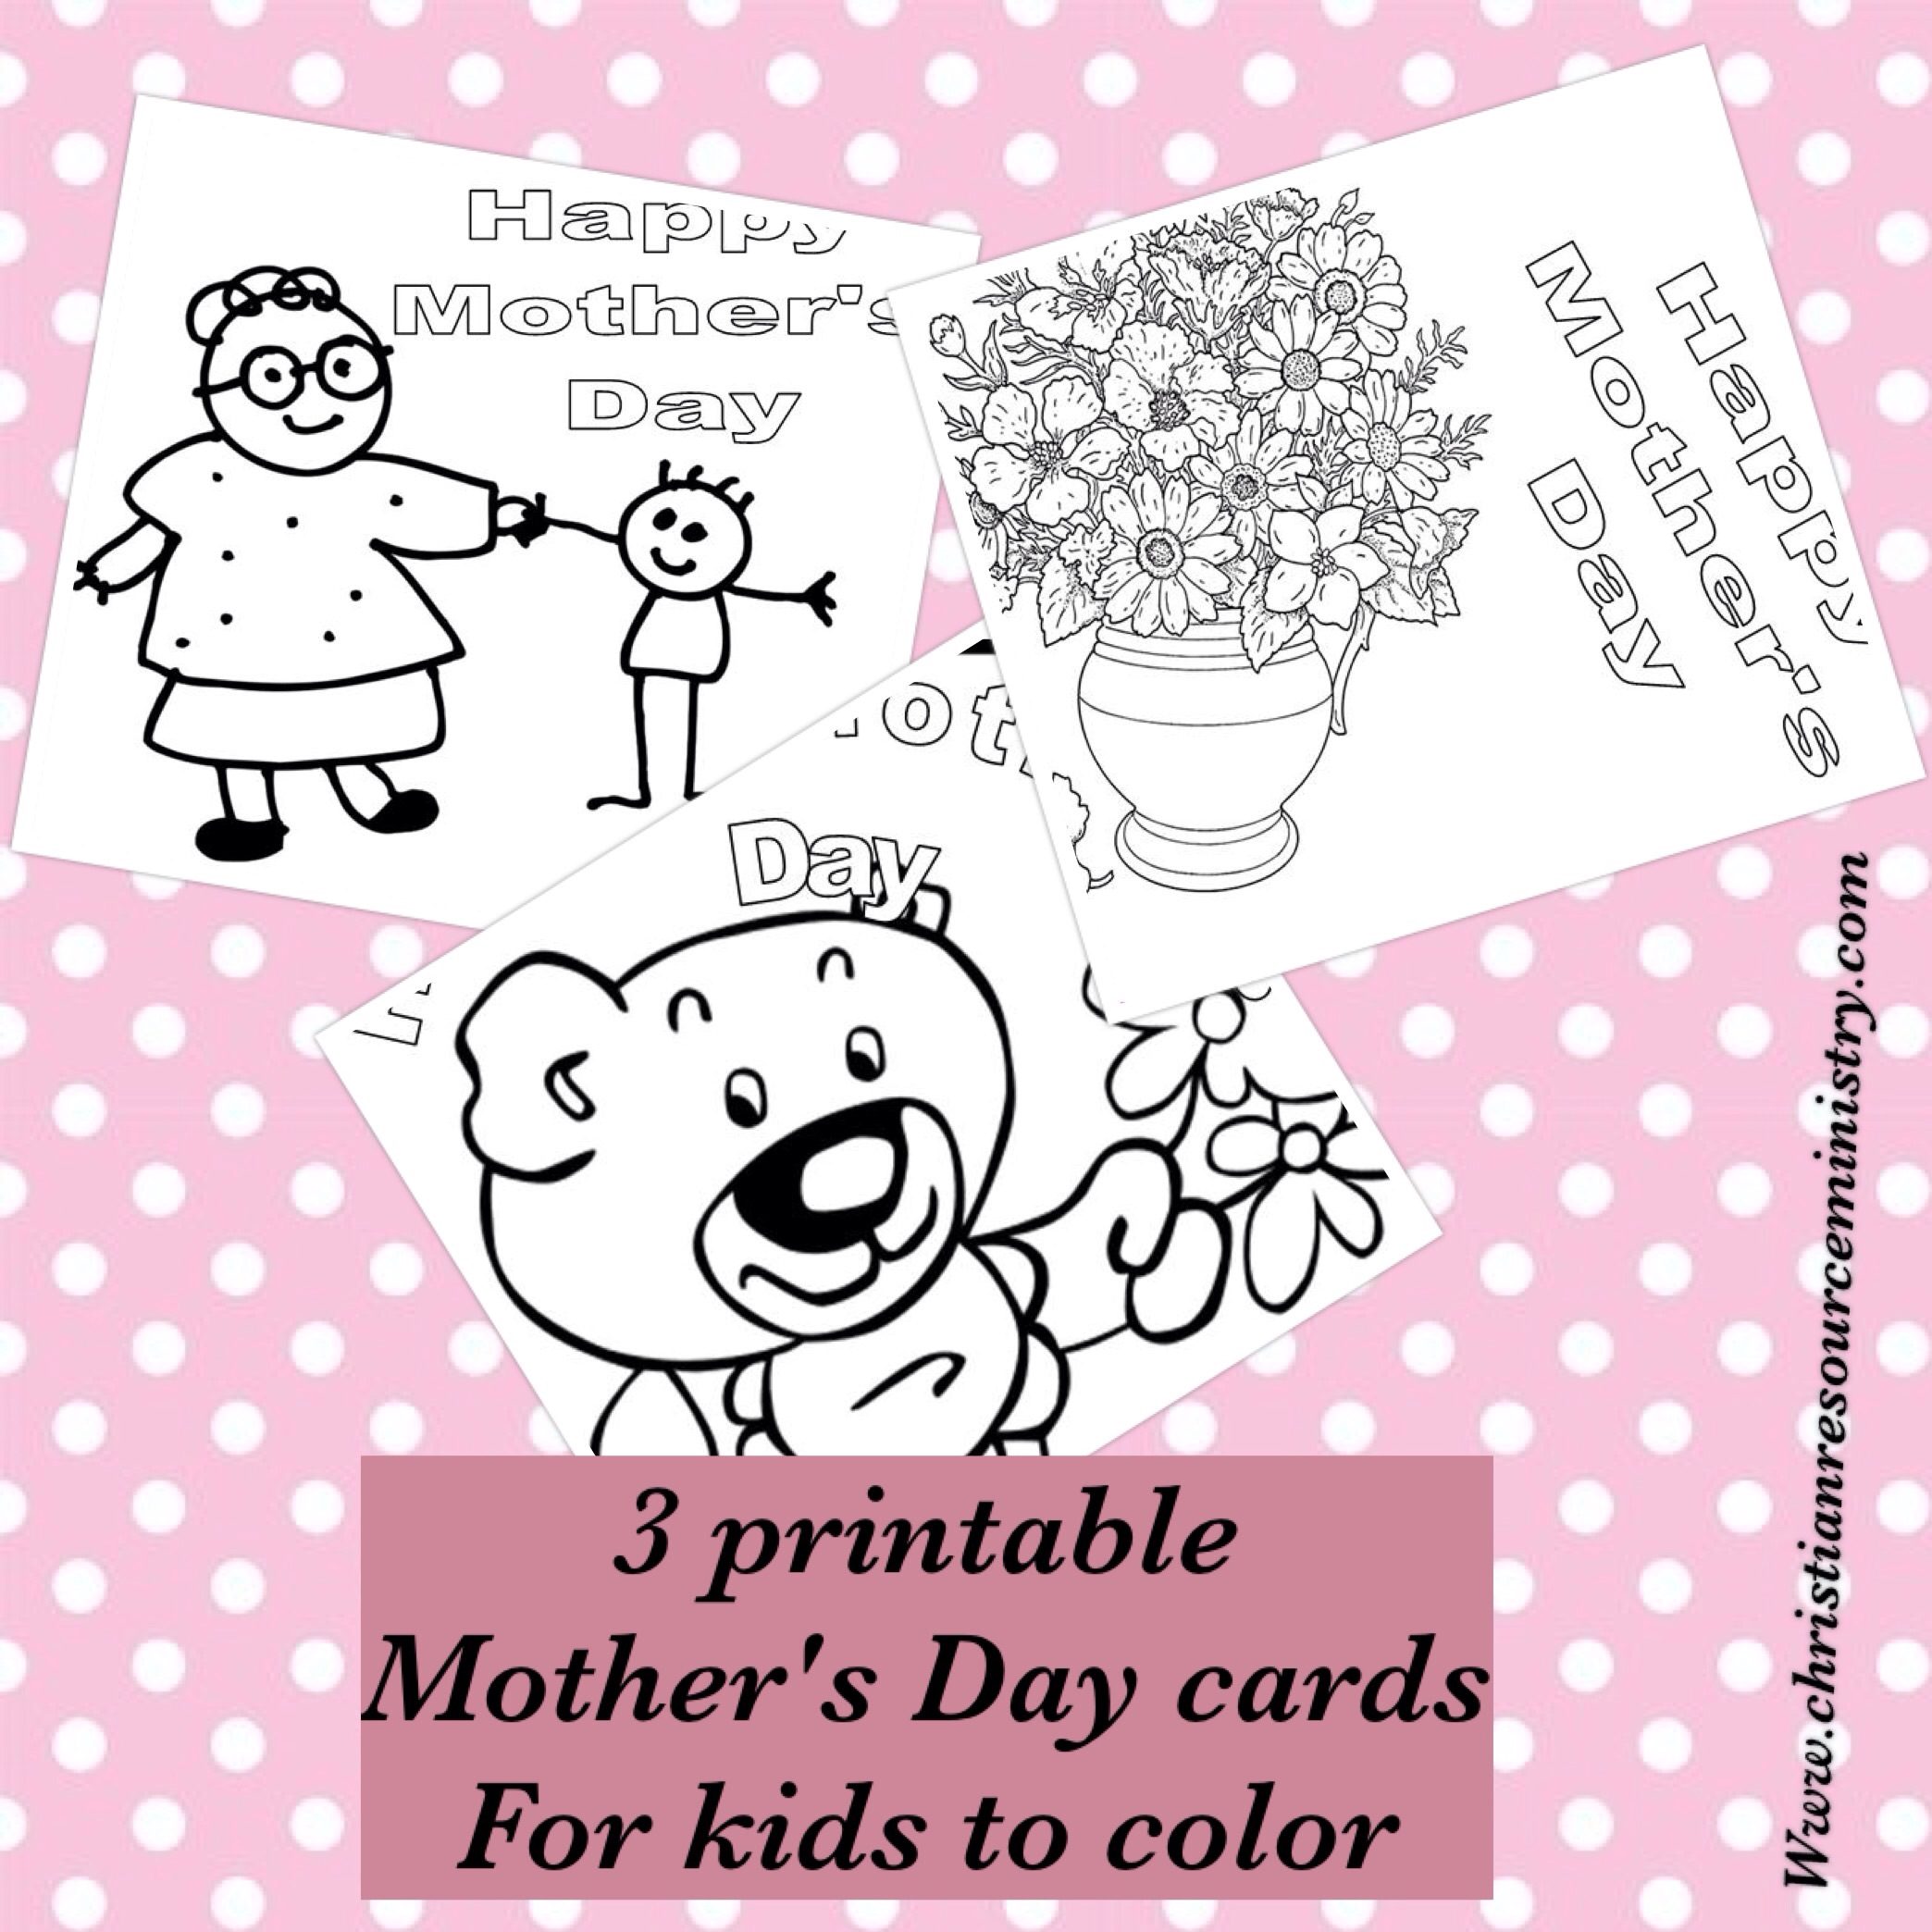 Printable Mother's Day Cards For Kids